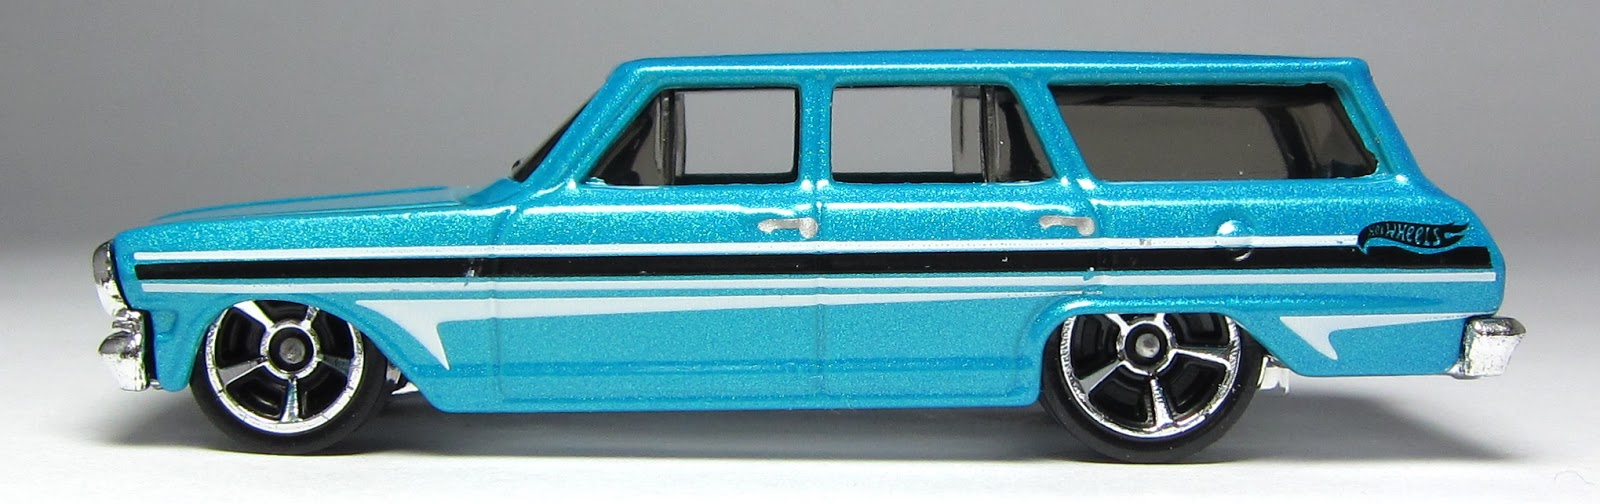 All Chevy 64 chevy nova : First Look: Hot Wheels '64 Chevy Nova Station Wagon (along with ...